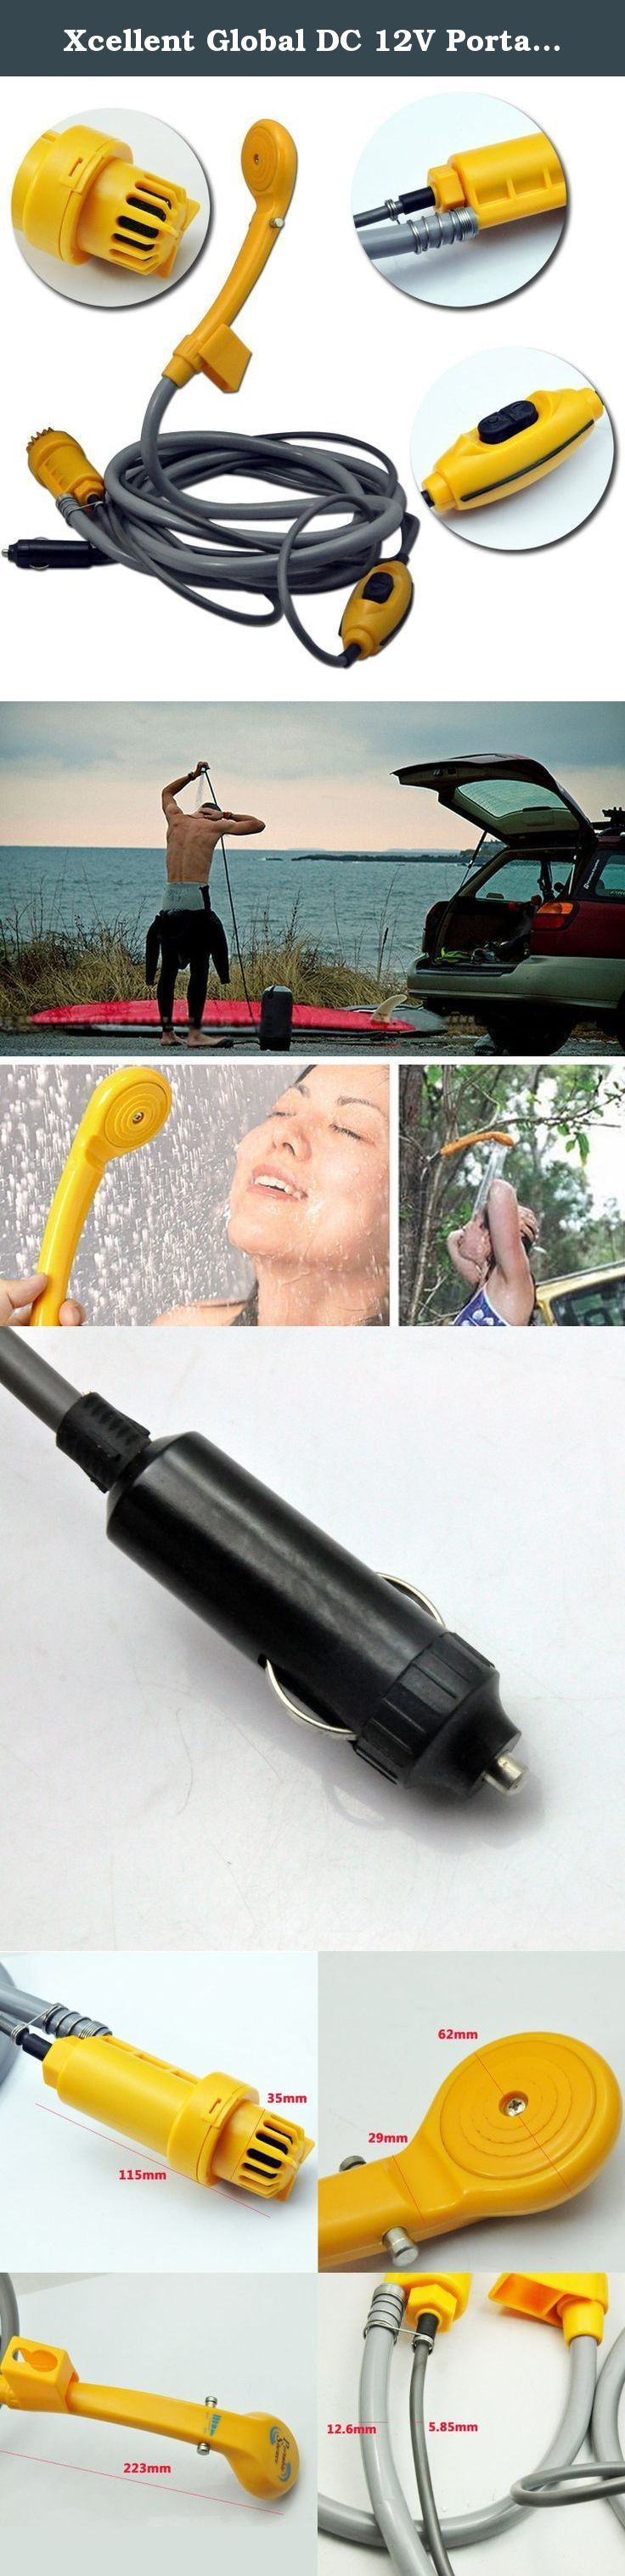 Xcellent Global DC 12V Portable Shower Spray Set with Water Pump for Travel Outdoor, Camping, Boating, Sun Bathing, Pet Washing and Baby Shower AT012. The Portable shower can be connected to water container, to allow you to easily wash your car, pans, dogs, outdoor shoes and have a great shower with sun heated water. Besides, the water power can be adjusted to meet your need. Features: - Work with water container - Great for having a shower, cleaning your car, dog, shoes, etc. - Water…